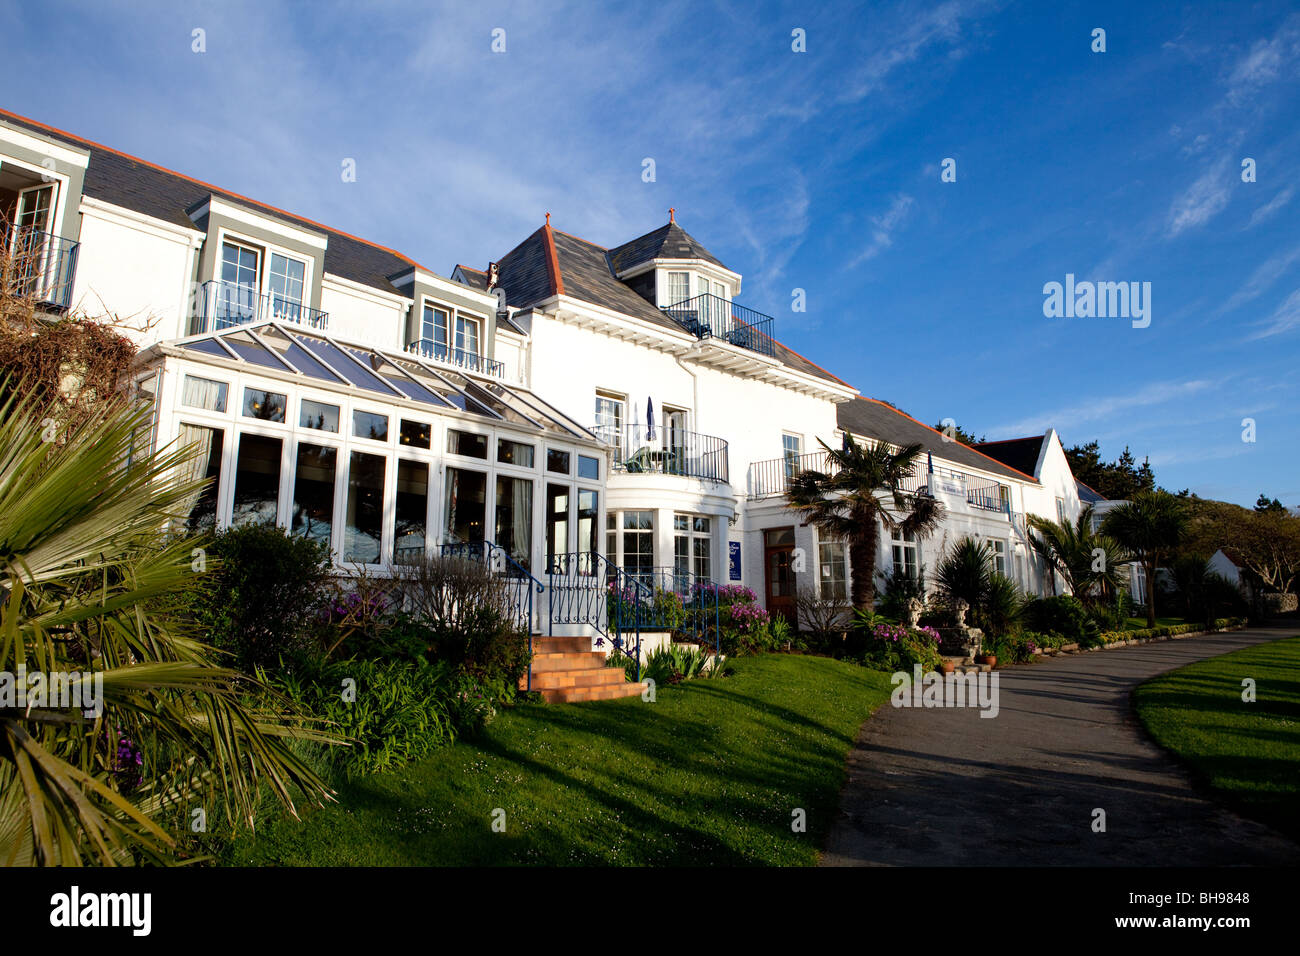 The White House Hotel Herm Island Stock Photo 27863480